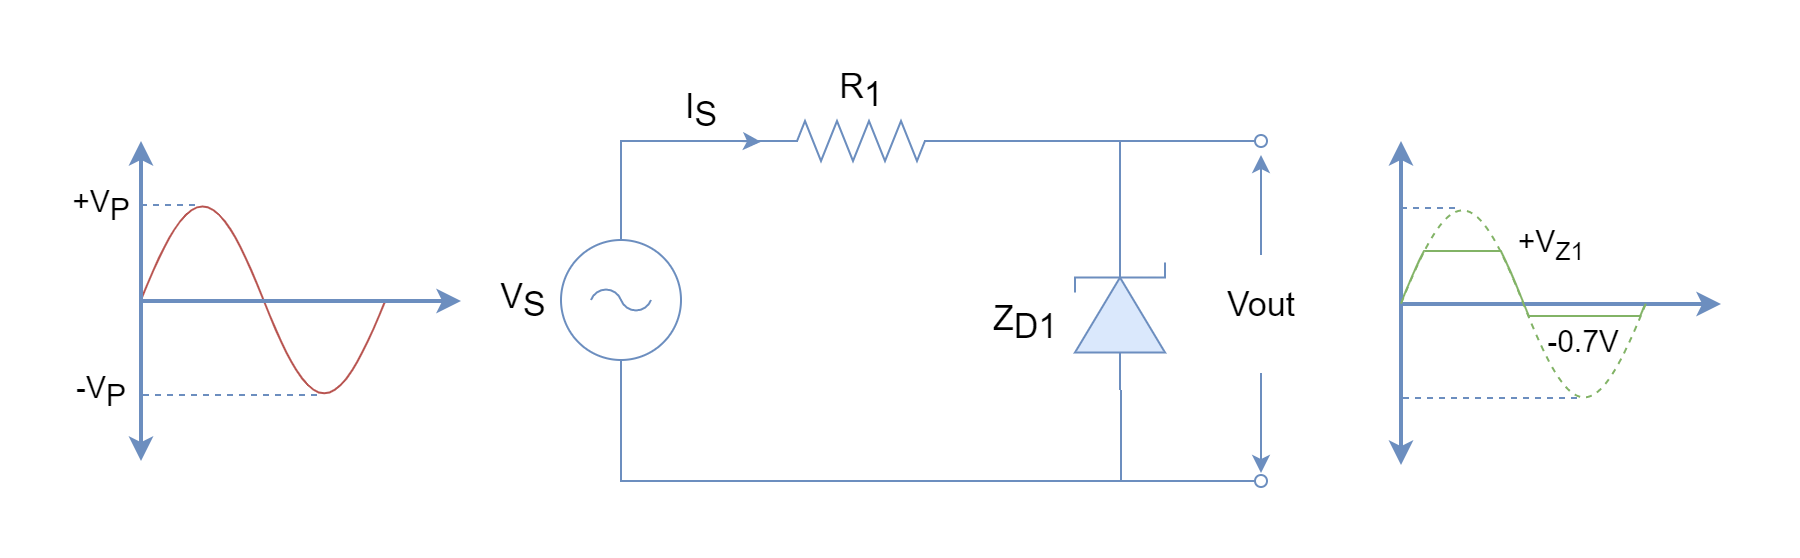 Positive Zener diode clipping circuit